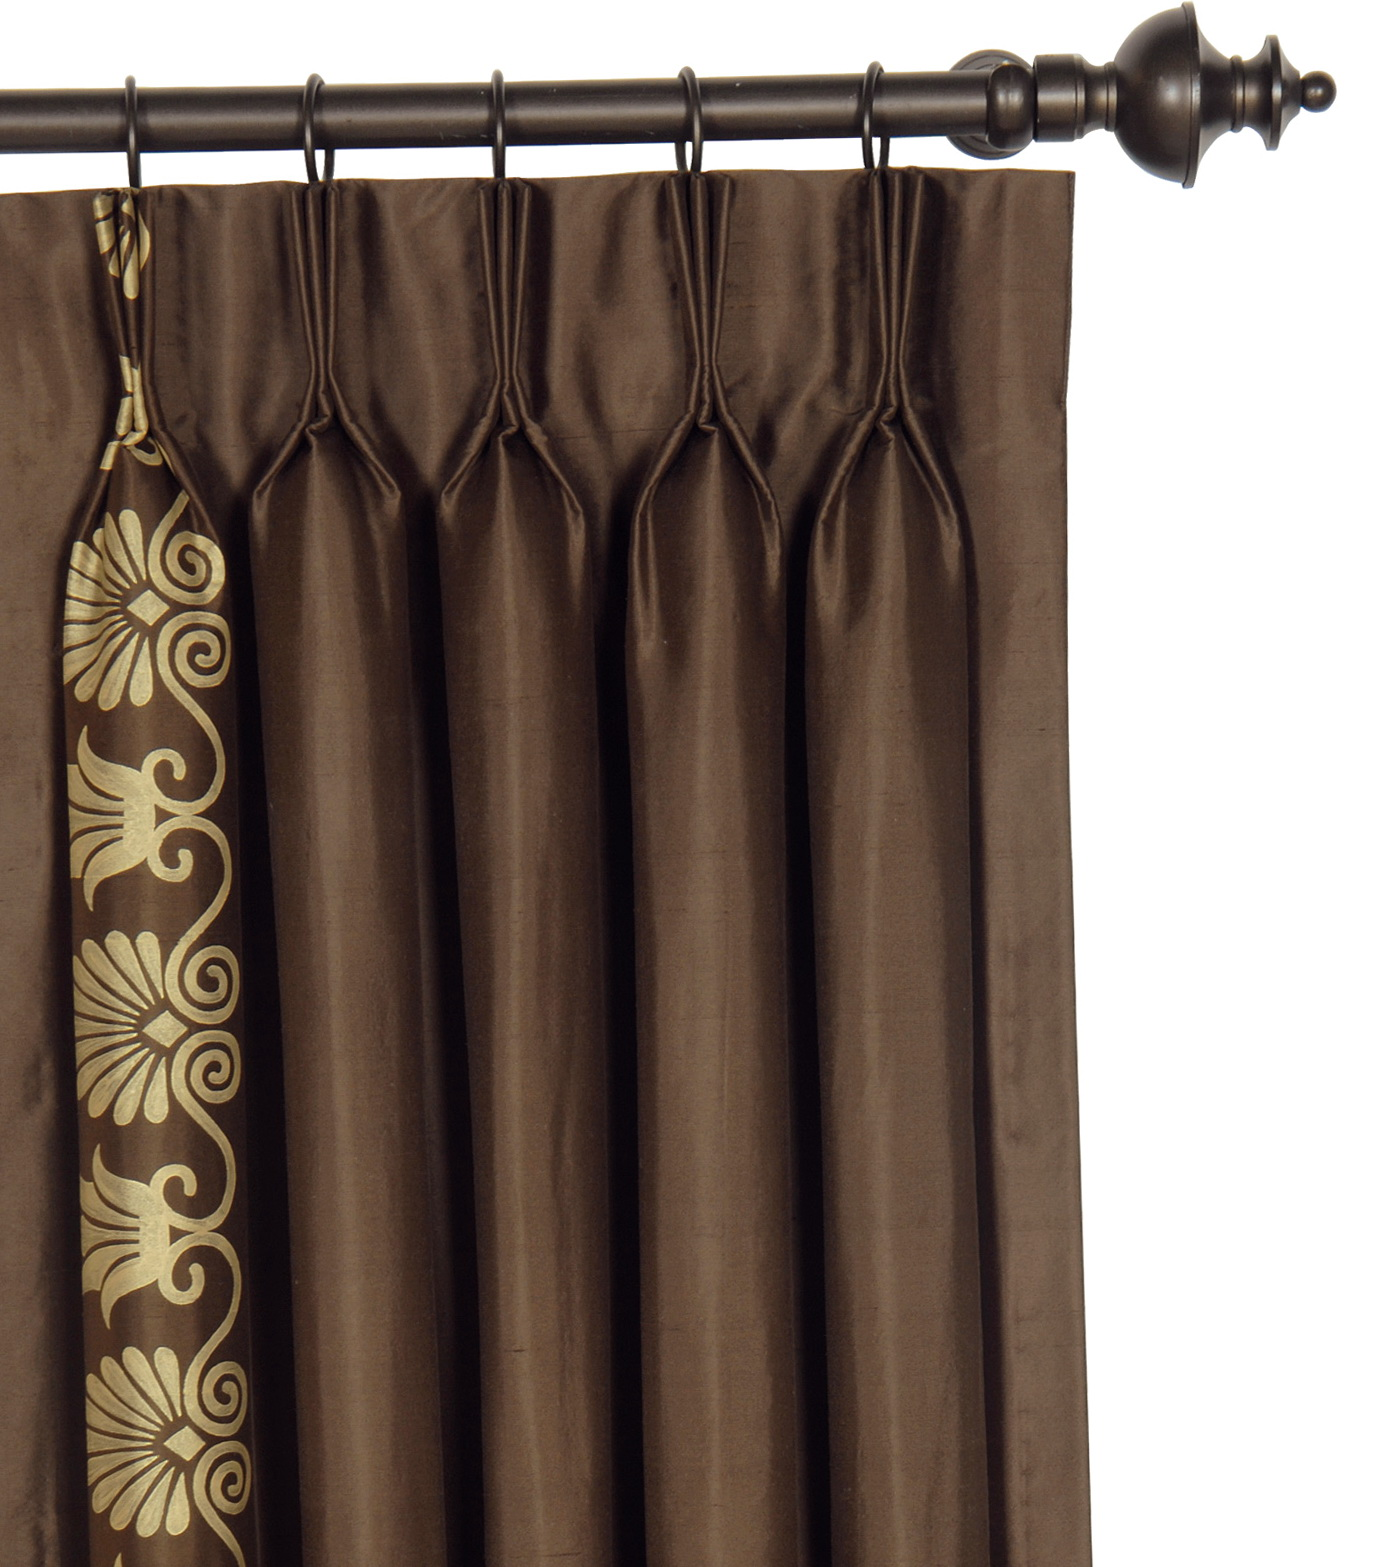 reverse feature with curtains a tiles curtain color printed gold have moroccan of decorative white on the stylish backdrop these pop our pin panels